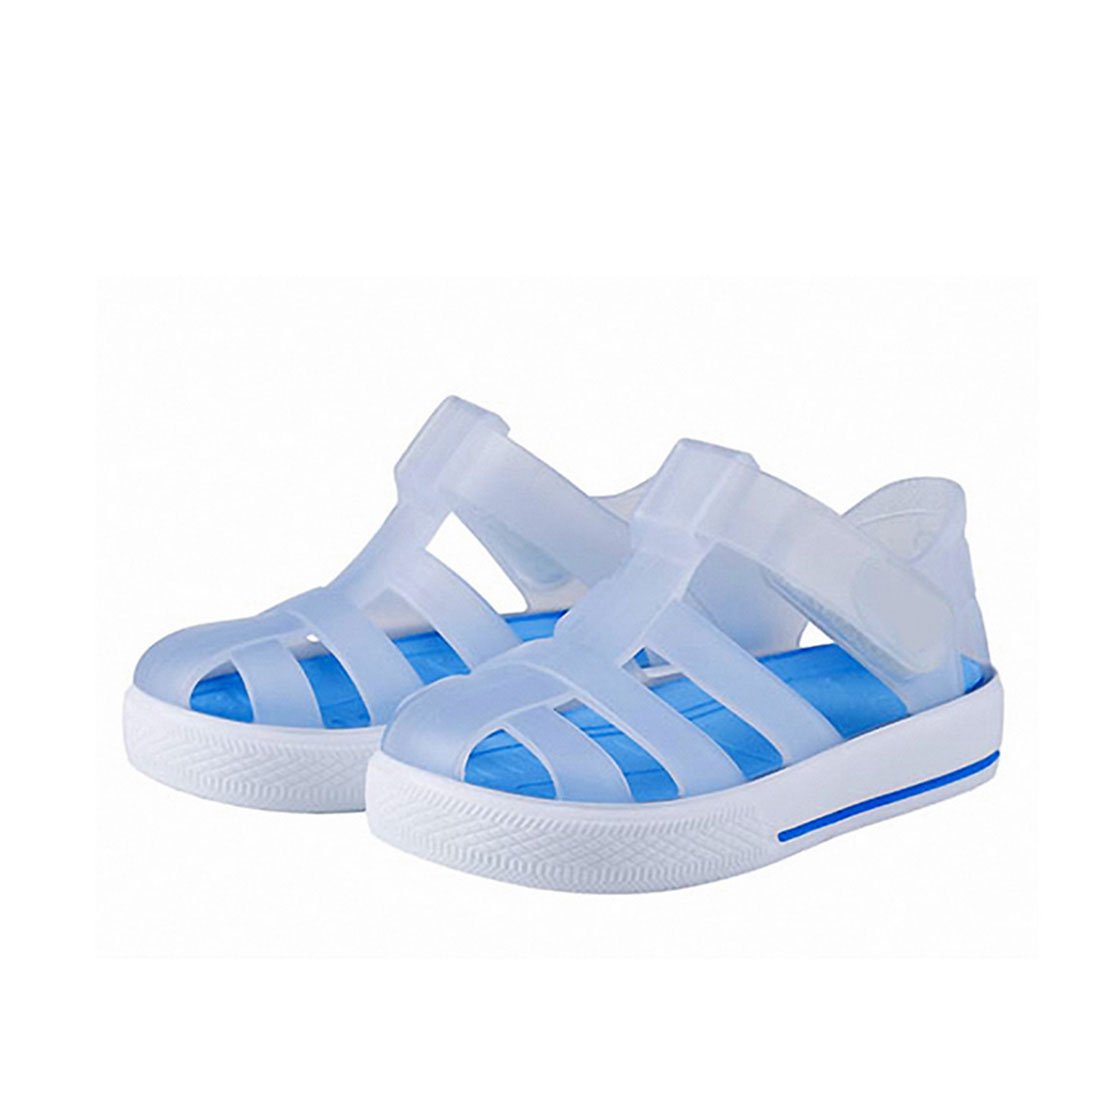 Plastic upper white and blue flat cover toe casual ventilate children's sandals